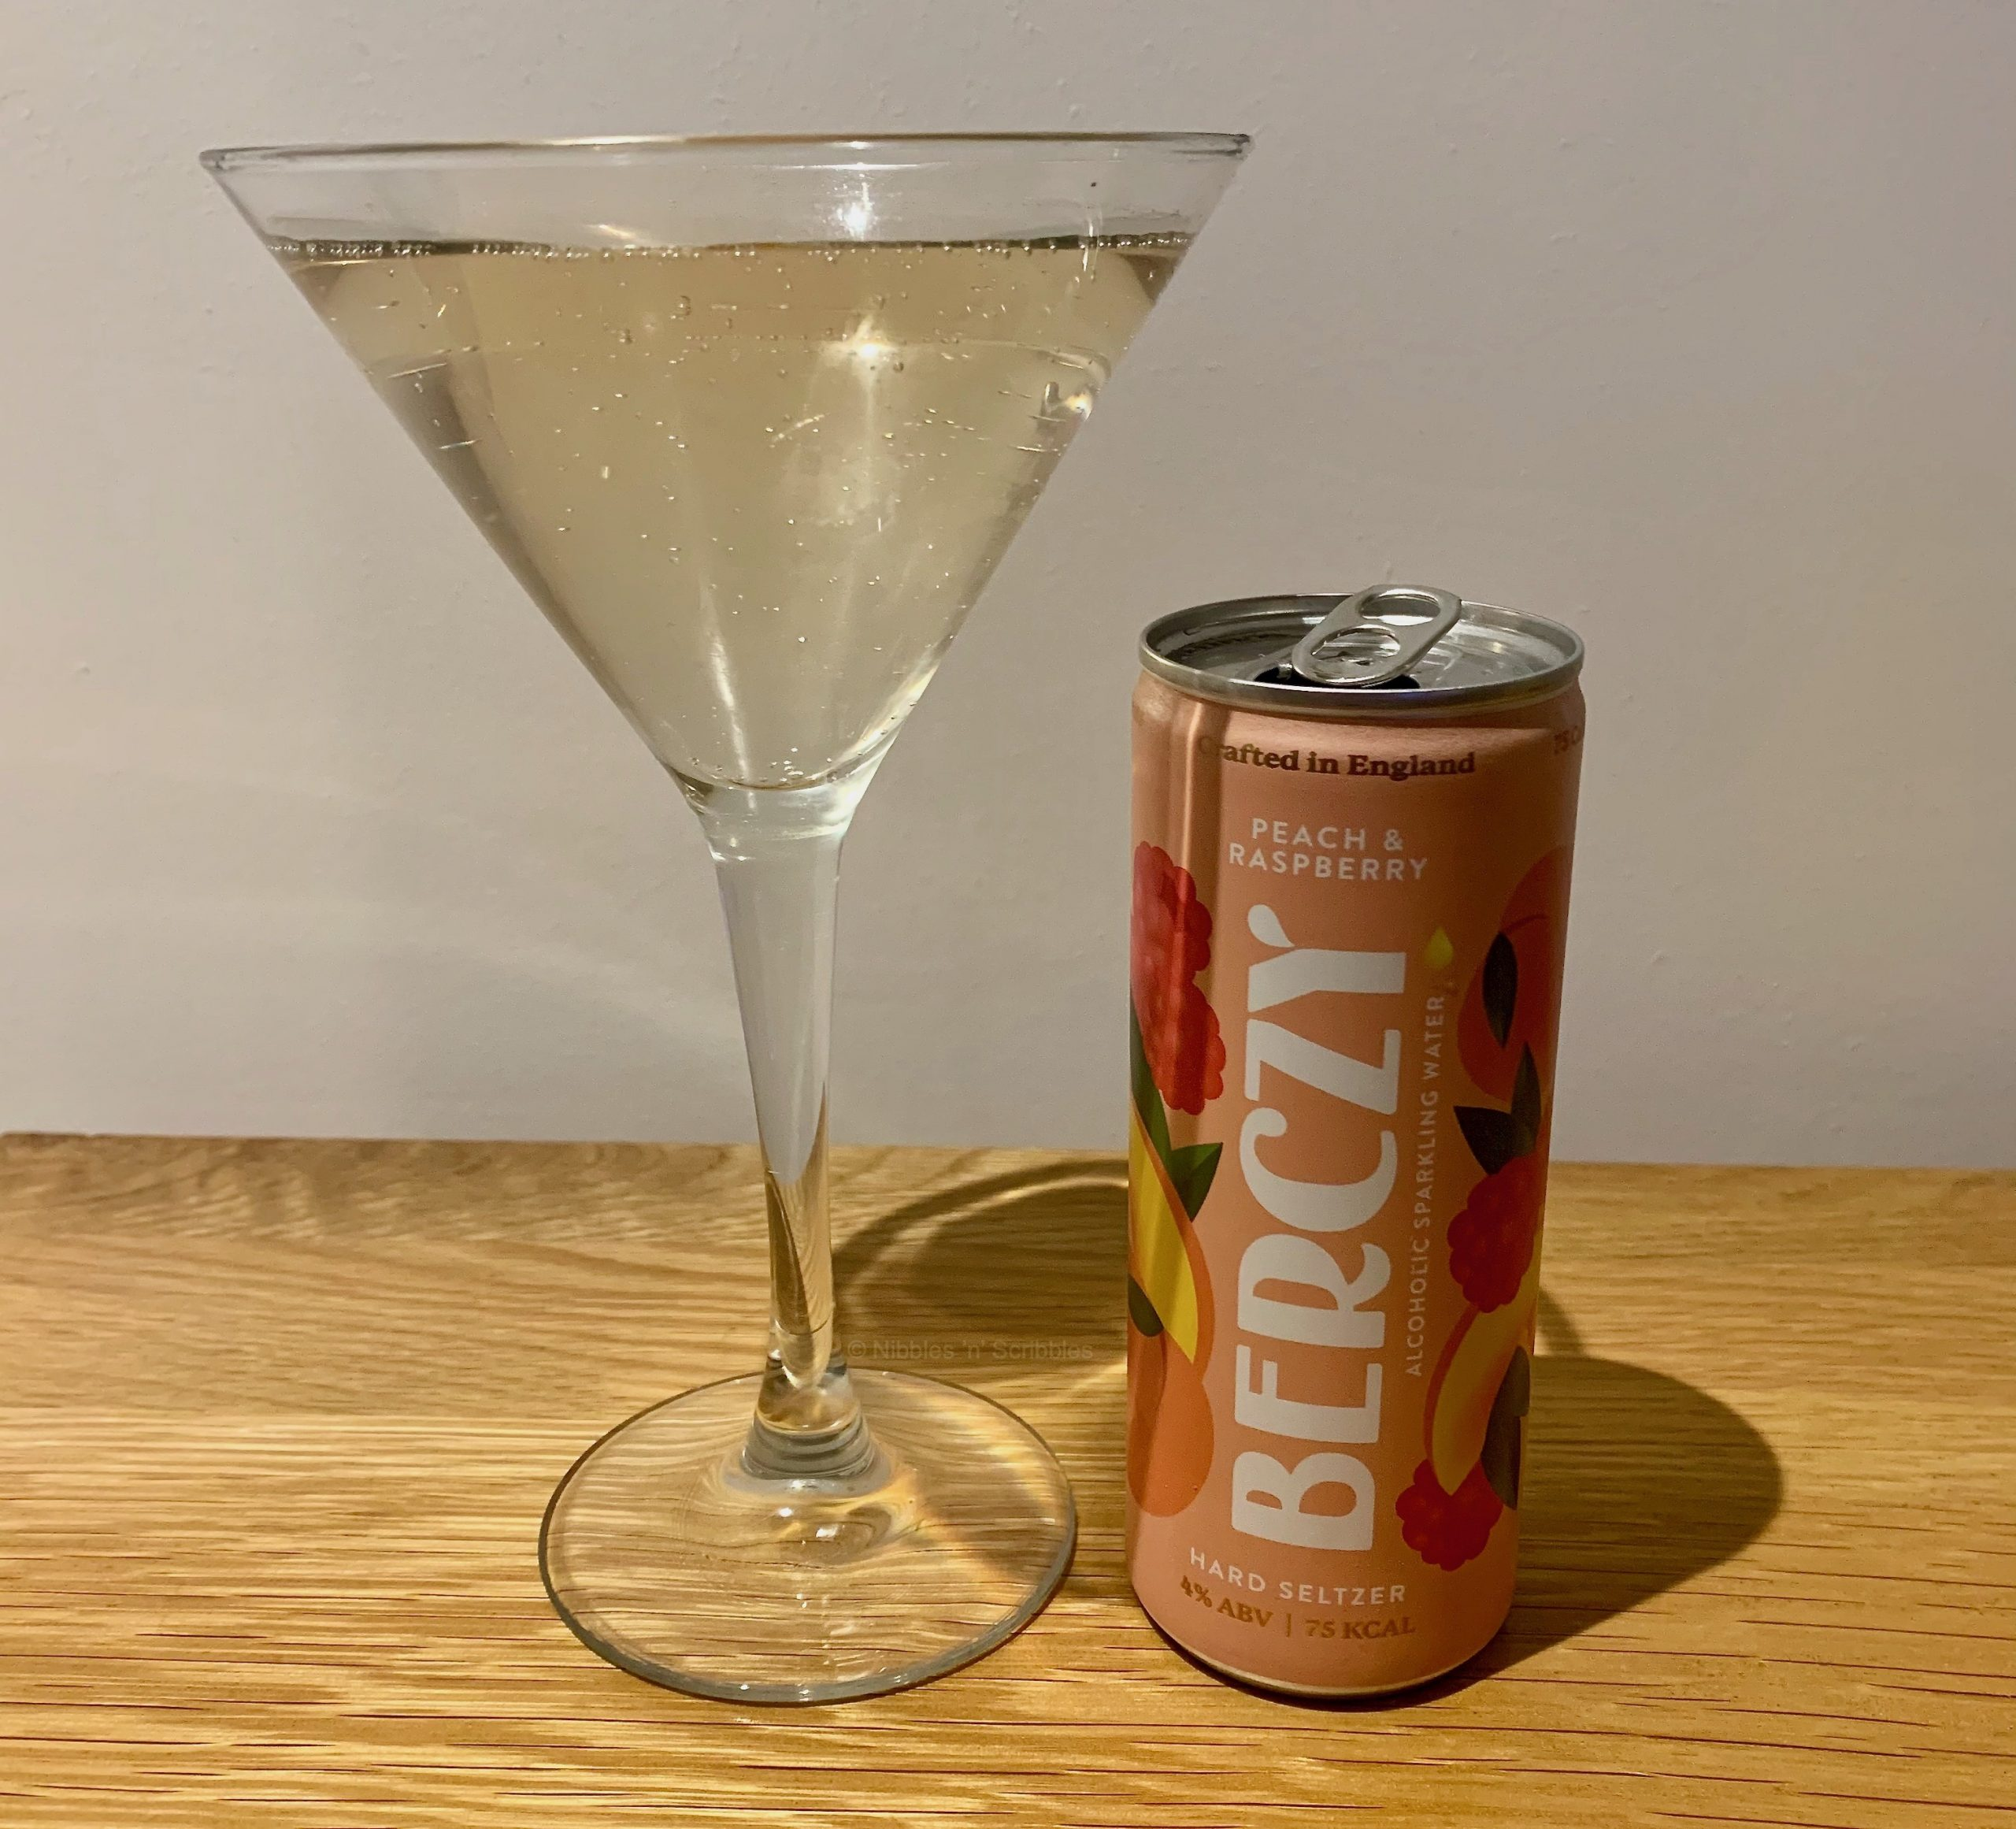 Peach and Raspberry Berczy Drinks Review